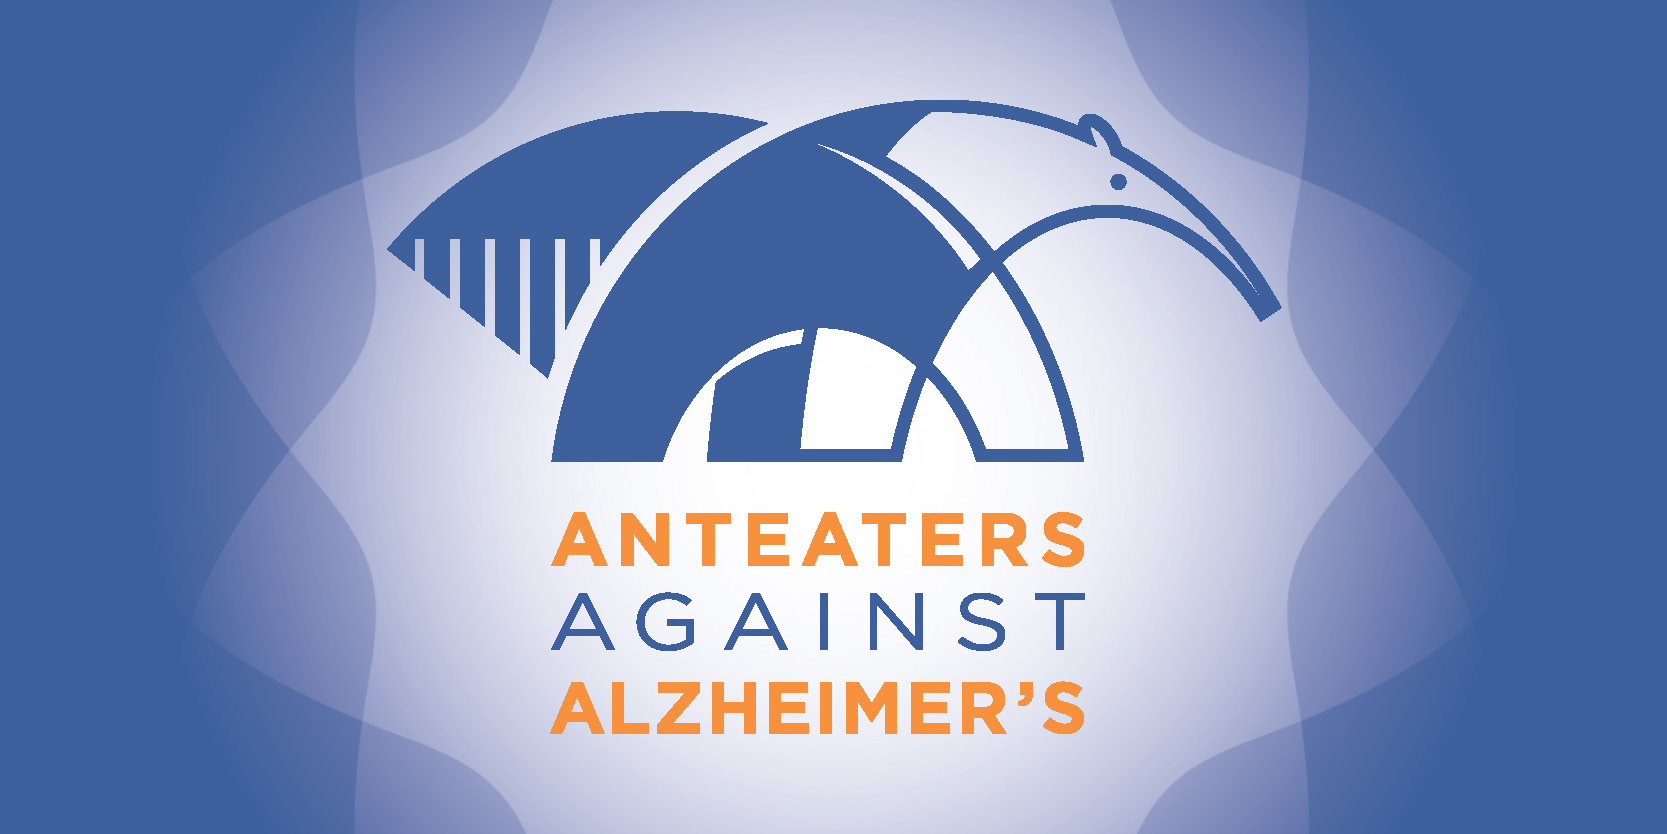 Anteaters Against Alzheimers!